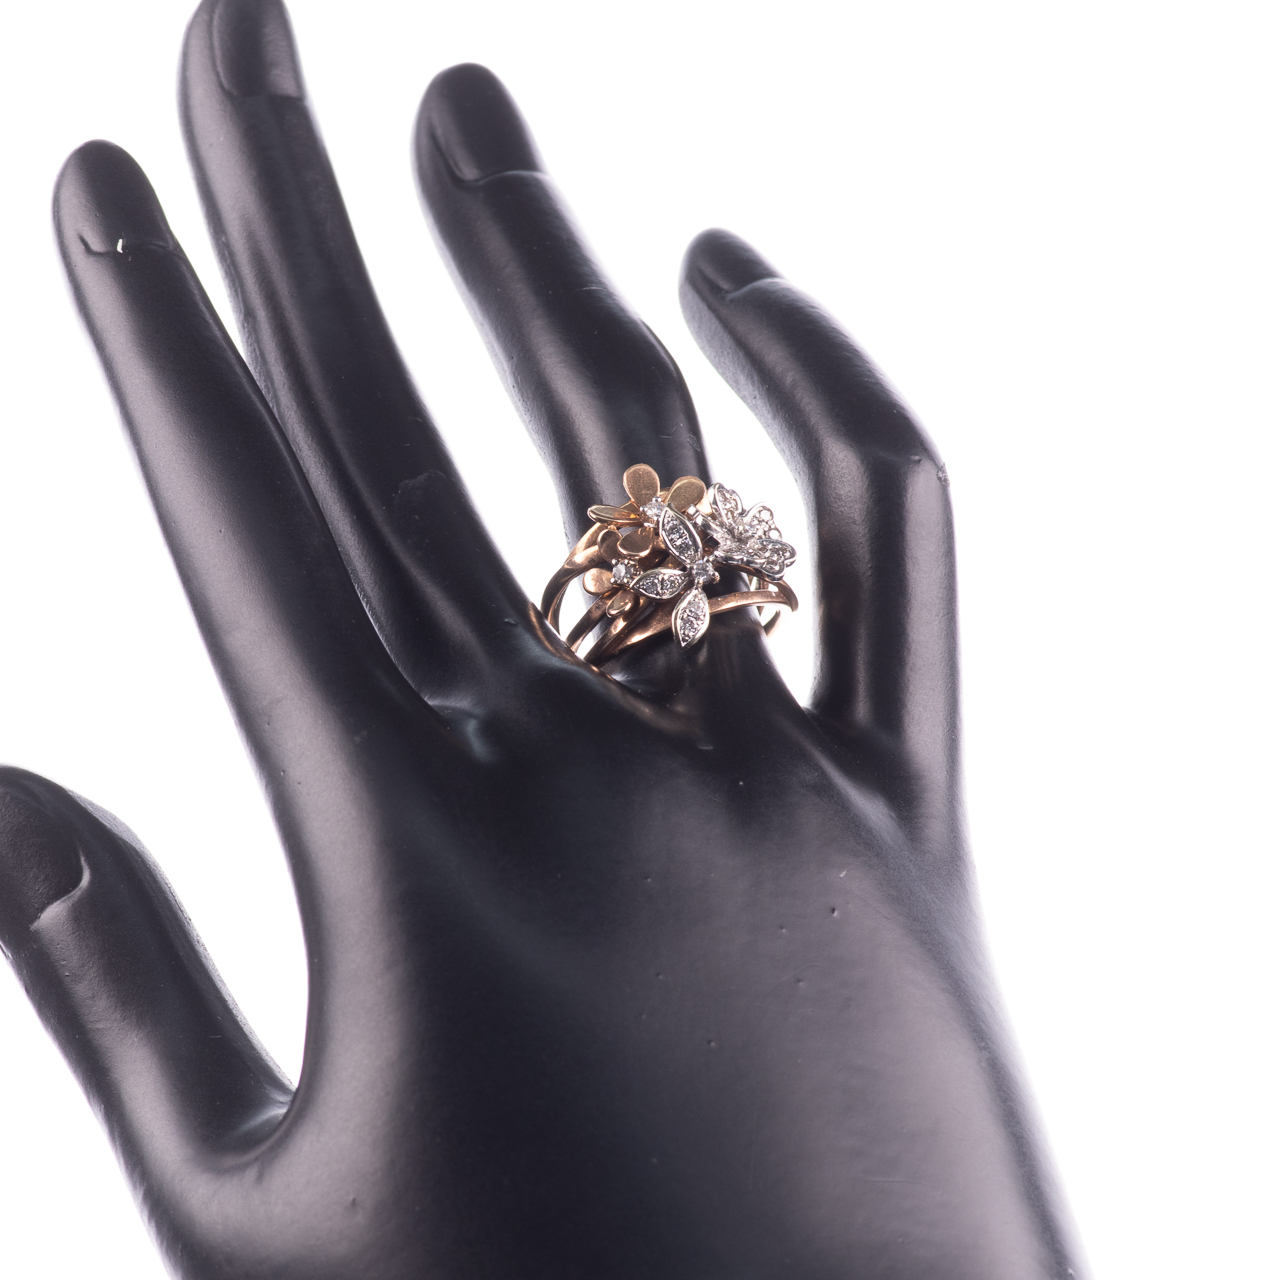 18ct Pink Gold Floral 0.25ct Diamond Ring - Image 2 of 7